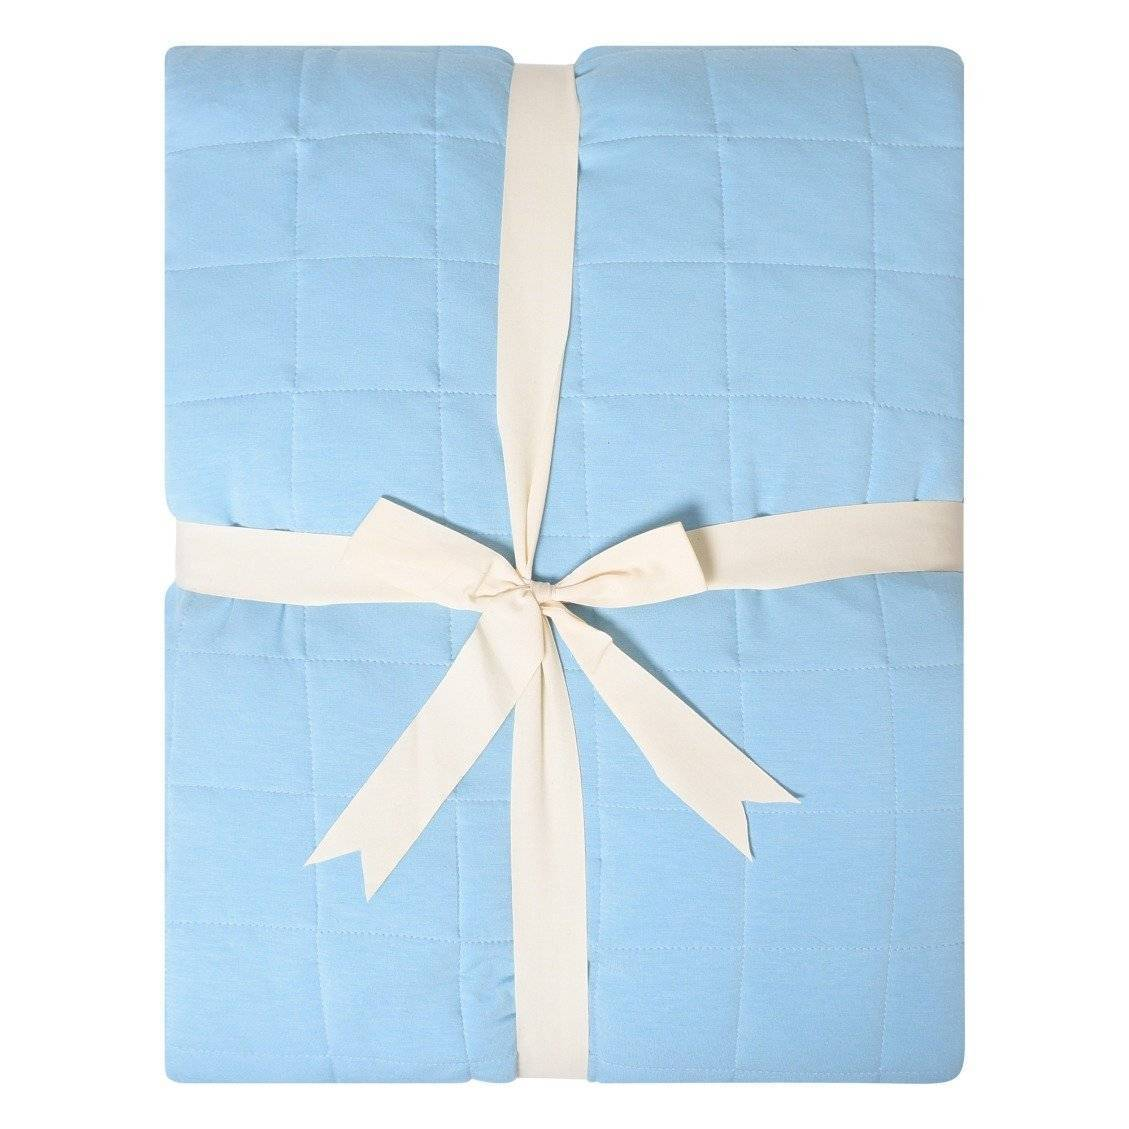 Adult Quilted Blanket in Azure - Kyte Baby